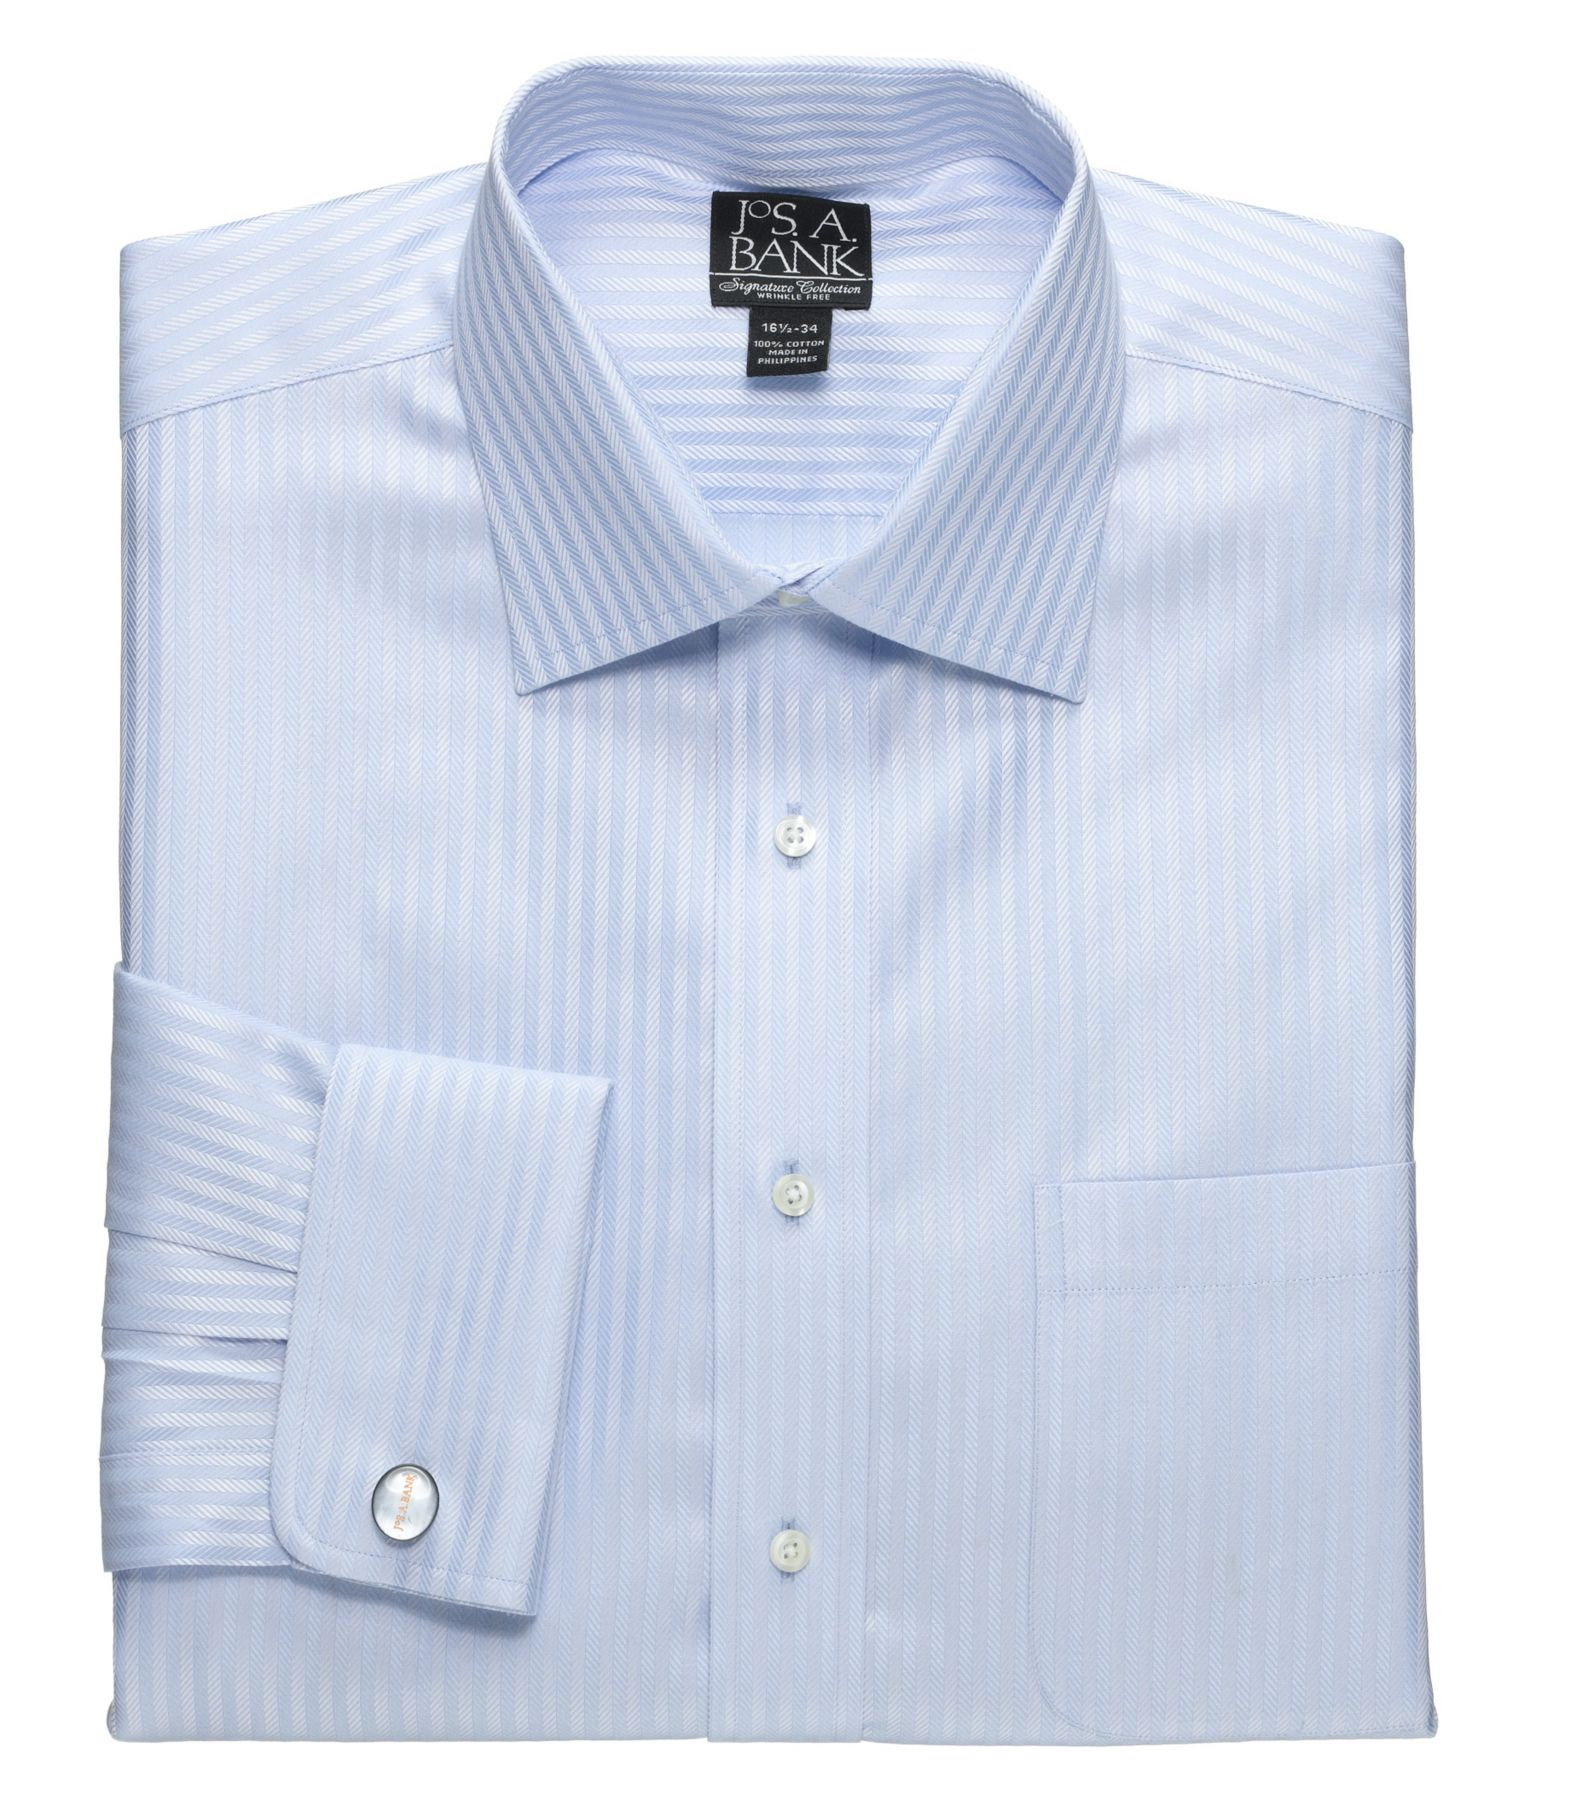 Formal Dress Shirts With Patterned Back Images